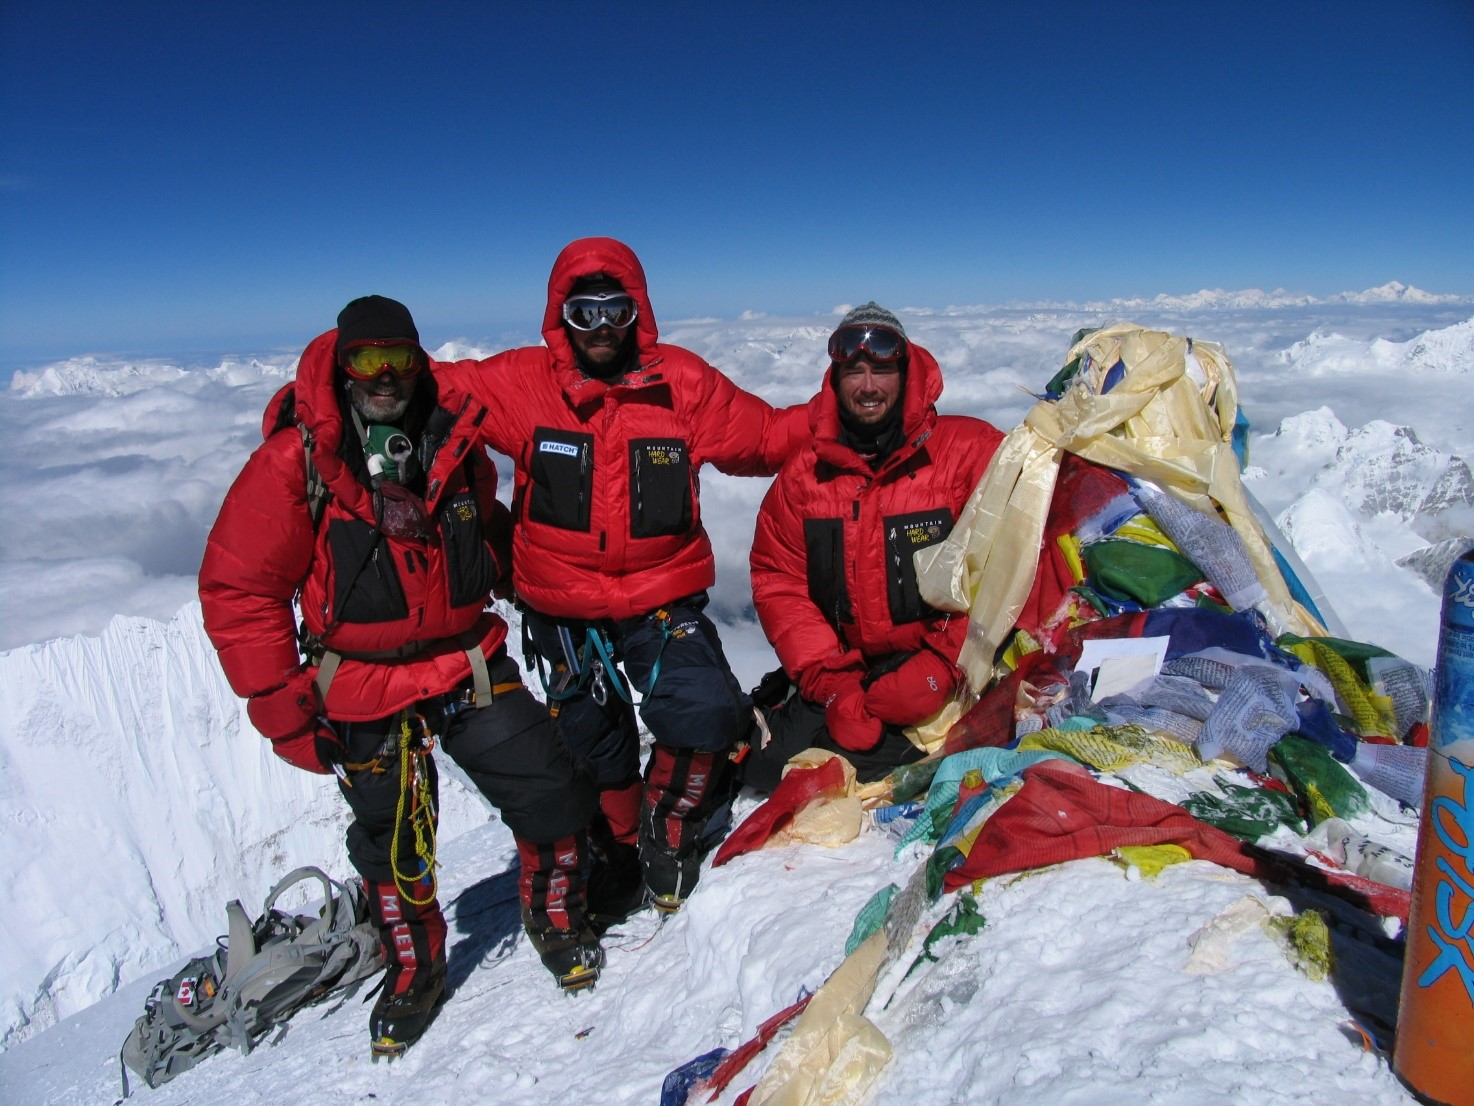 Summit of Everest compressed